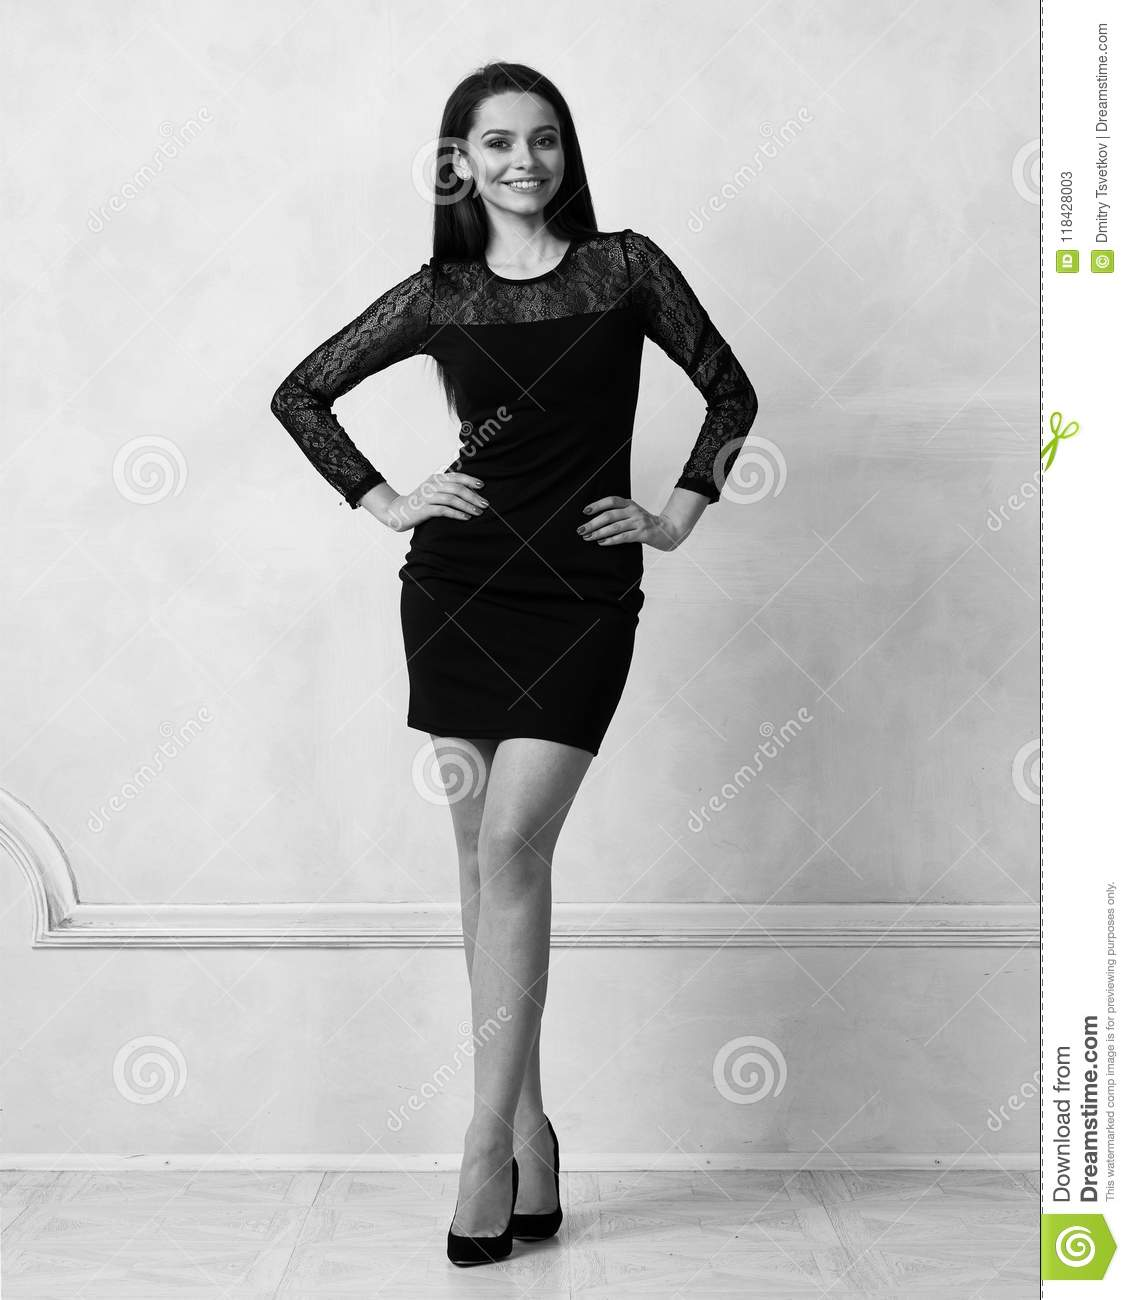 636fba24d25d Beautiful female model with long brunette hair demonstrating black bodycon  dress with straps and lace hem. Young attractive fashionable woman posing  in ...